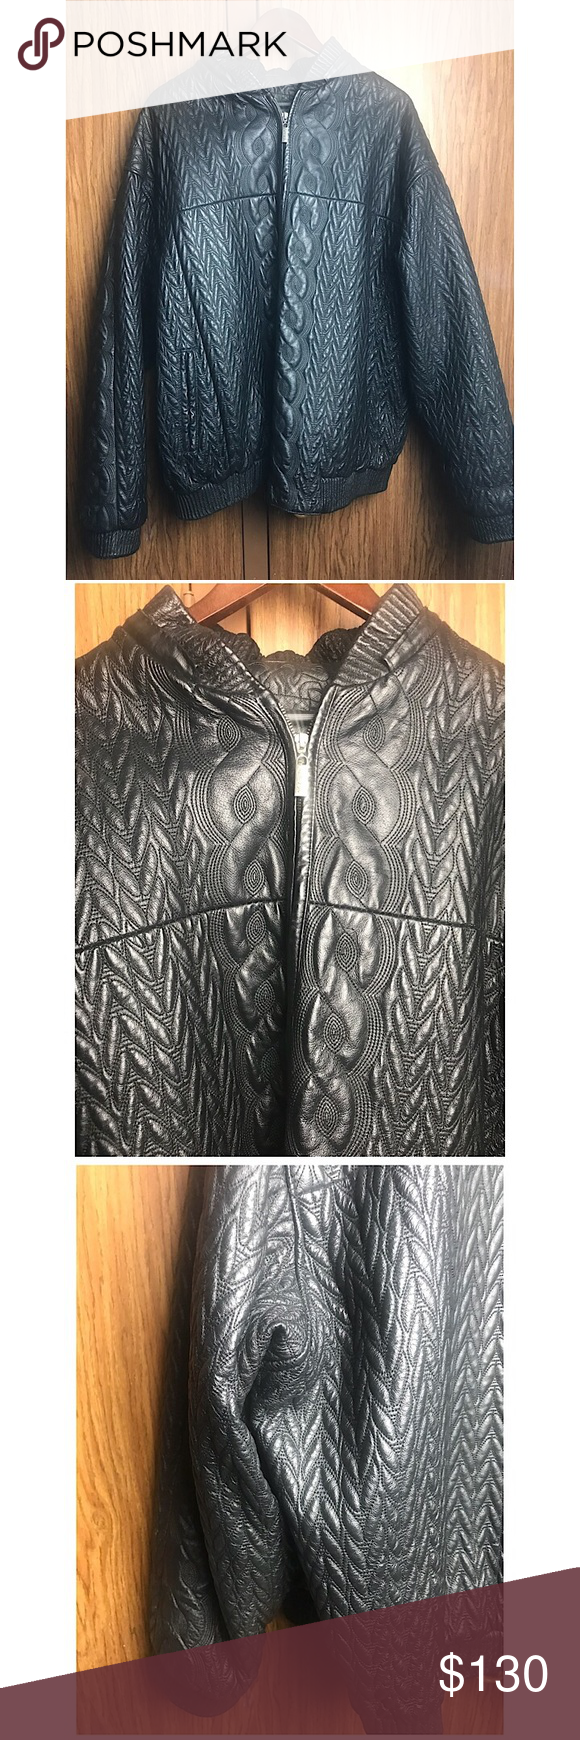 Men S Vilanto Genuine Leather Jacket Size 2x Item Is In Good Used Condition Shows Signs Of Light Wear T Genuine Leather Jackets Genuine Leather Clothes Design [ 1740 x 580 Pixel ]